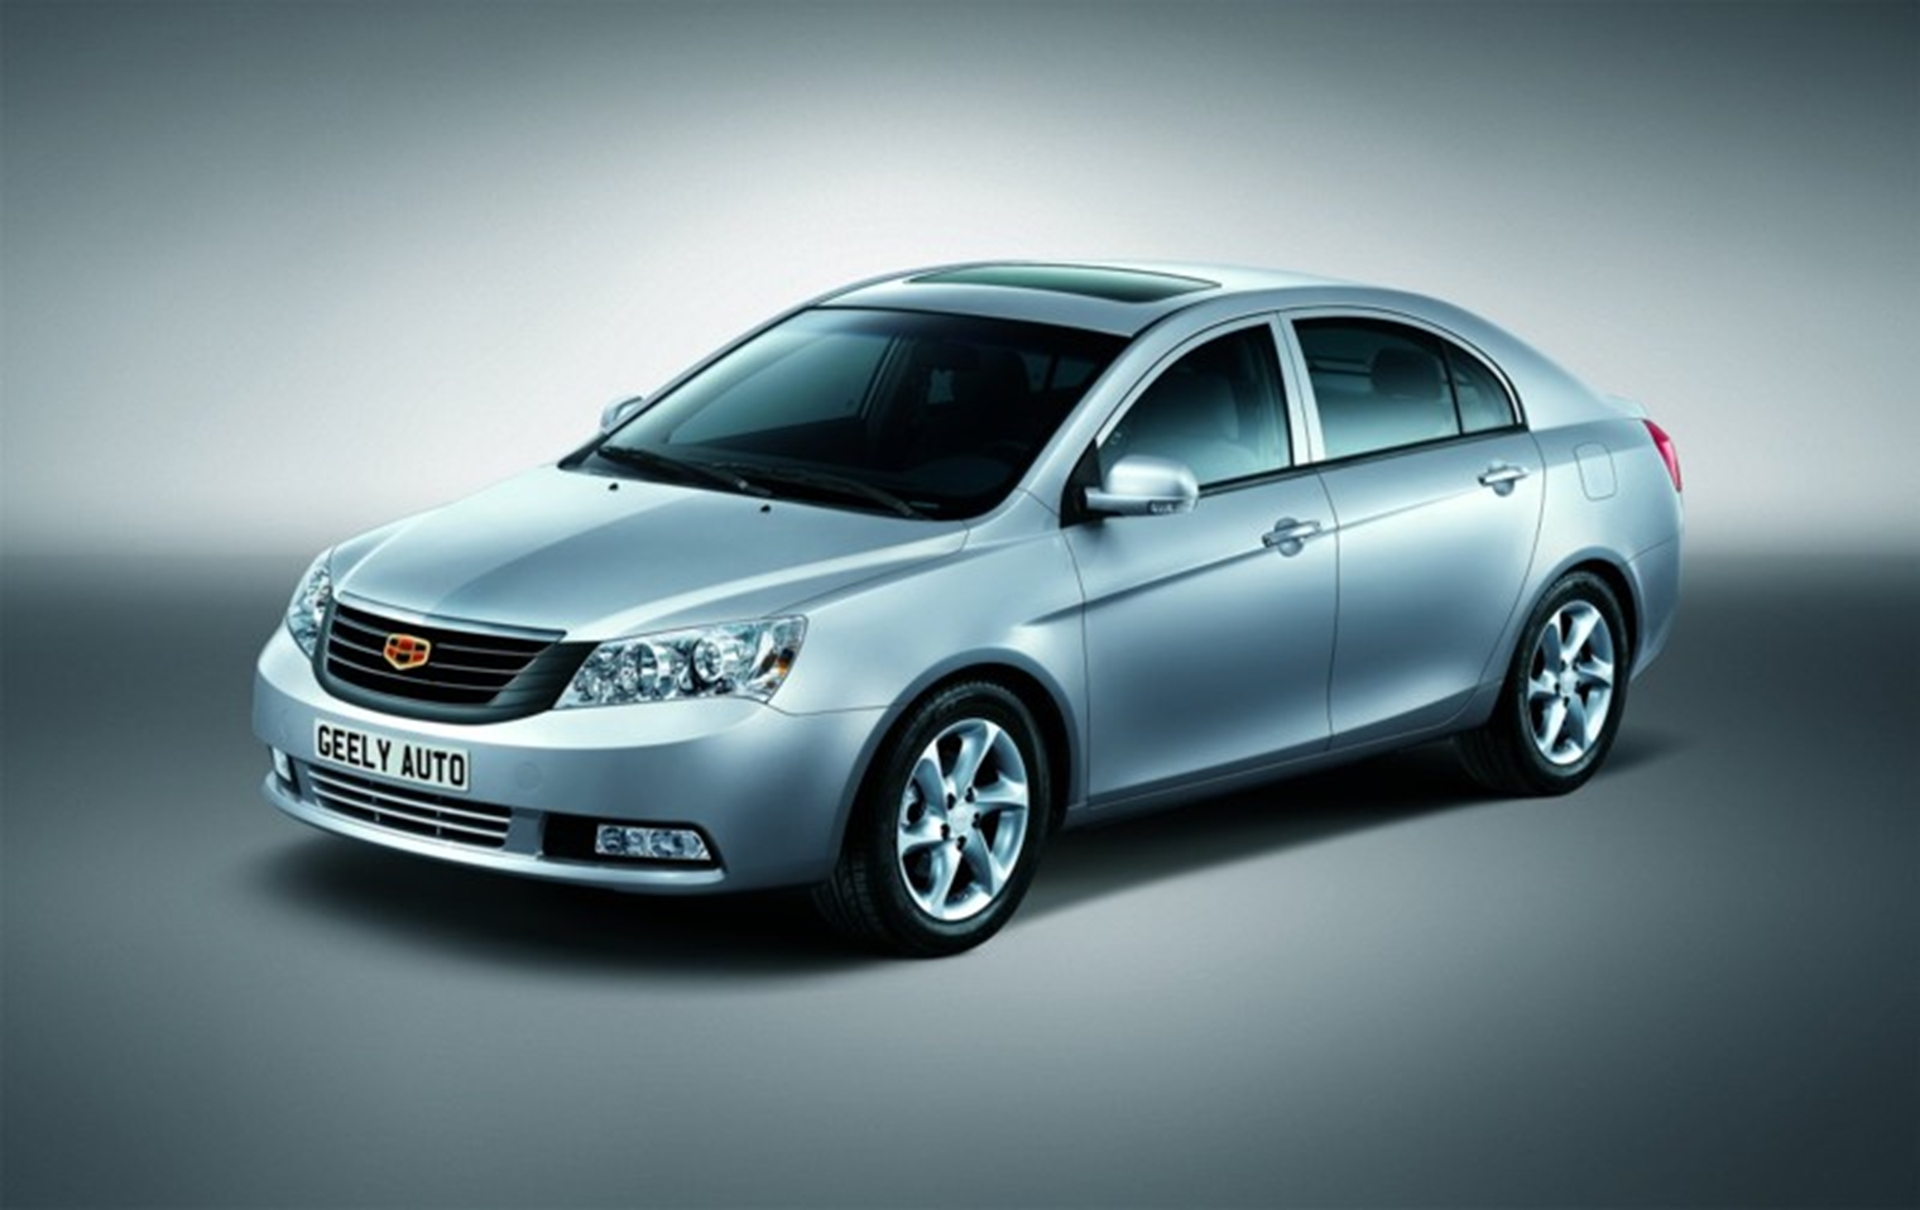 Geely Cars heading for the UK market